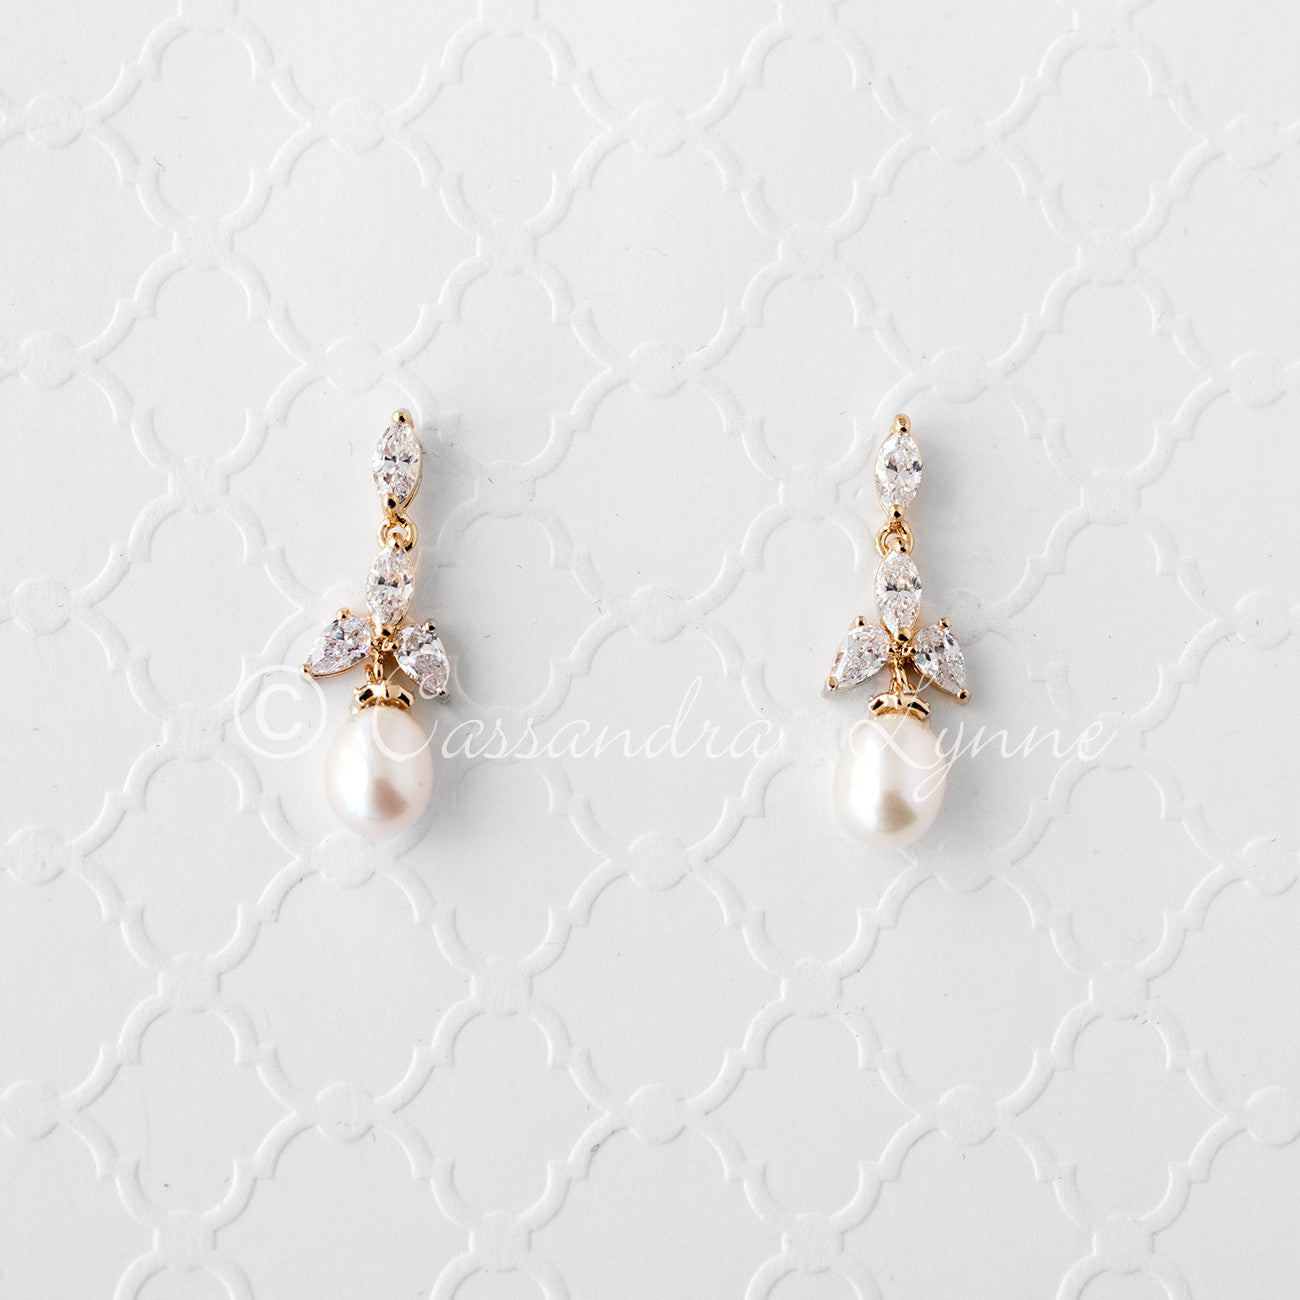 Pearl Bridal Earrings With Cz Jewels Cassandra Lynne